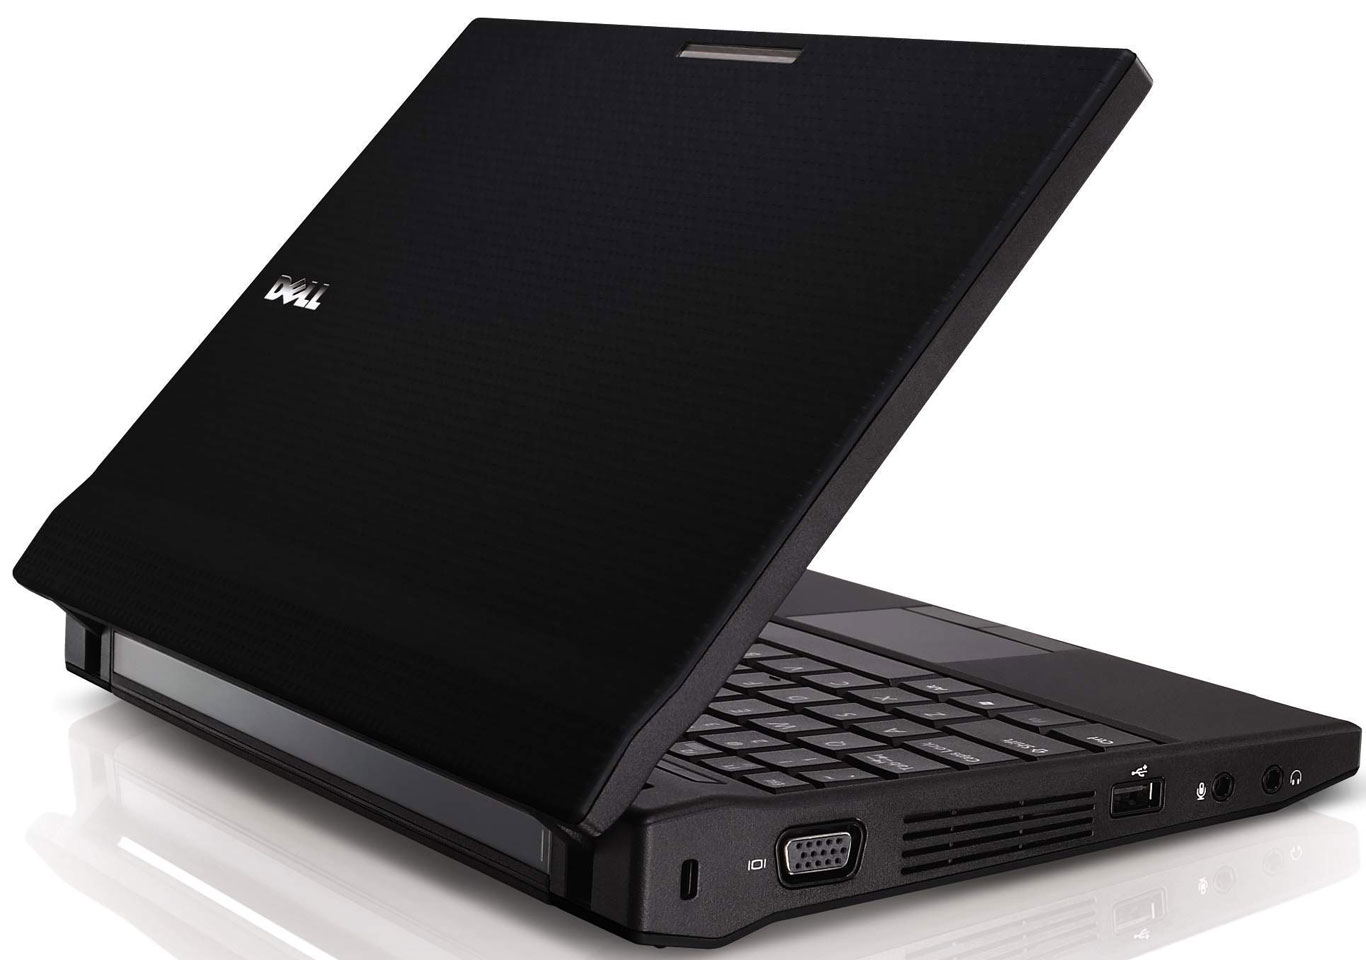 Dell Latitude 2120 Specification Review   Gadget Reviews